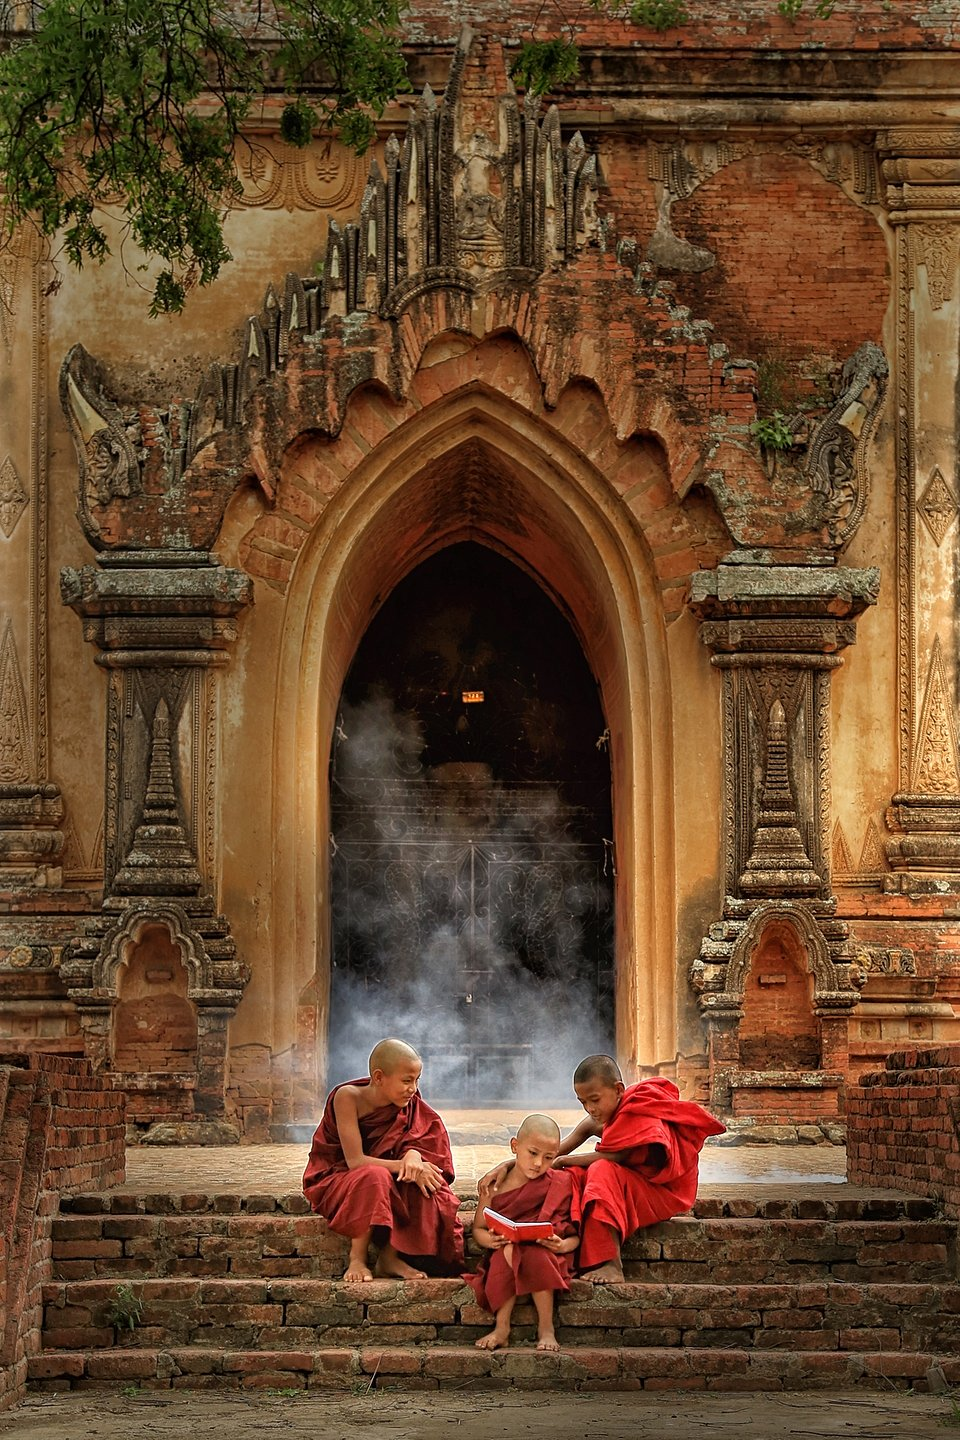 Young monks sitting on the steps of an ancient building, reading together. (Phyu Aye Pwint/Agora)